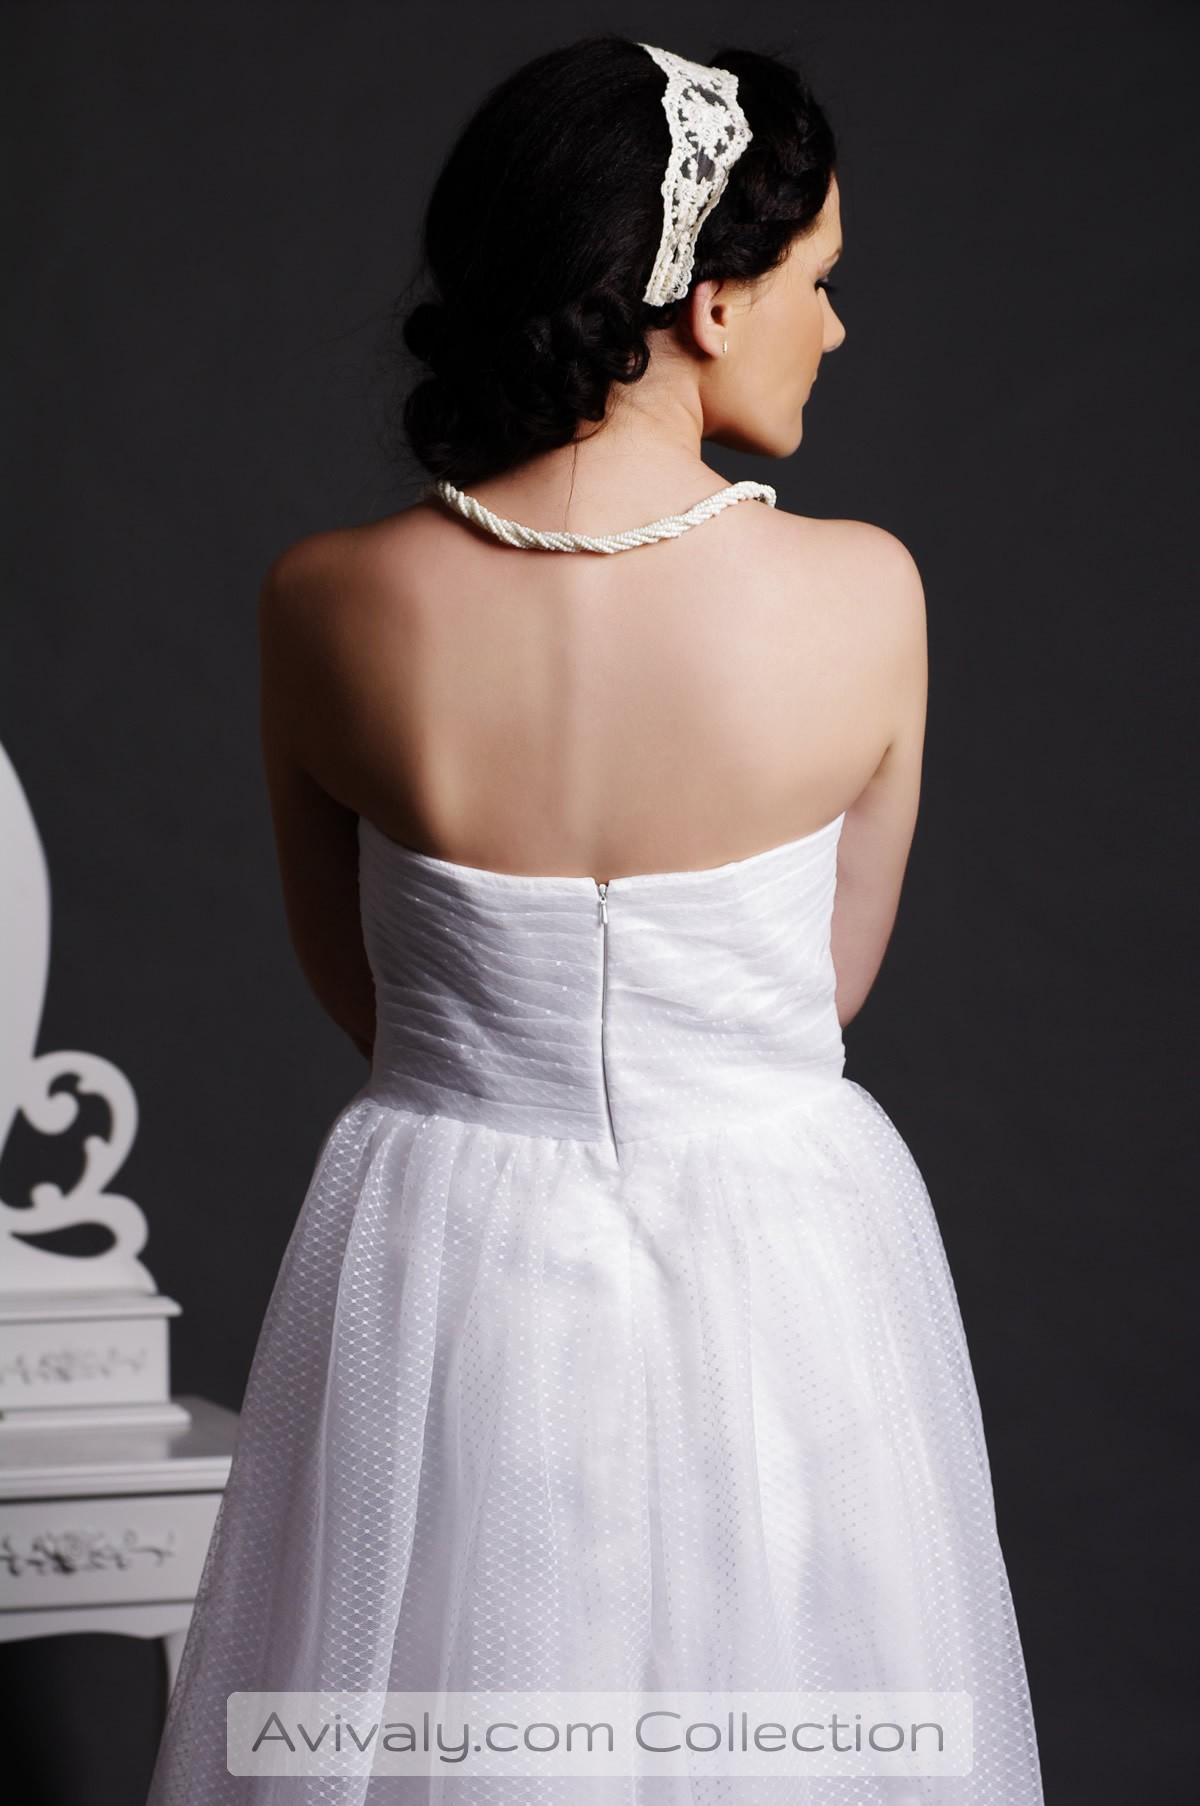 Nicola - Backless Rear View